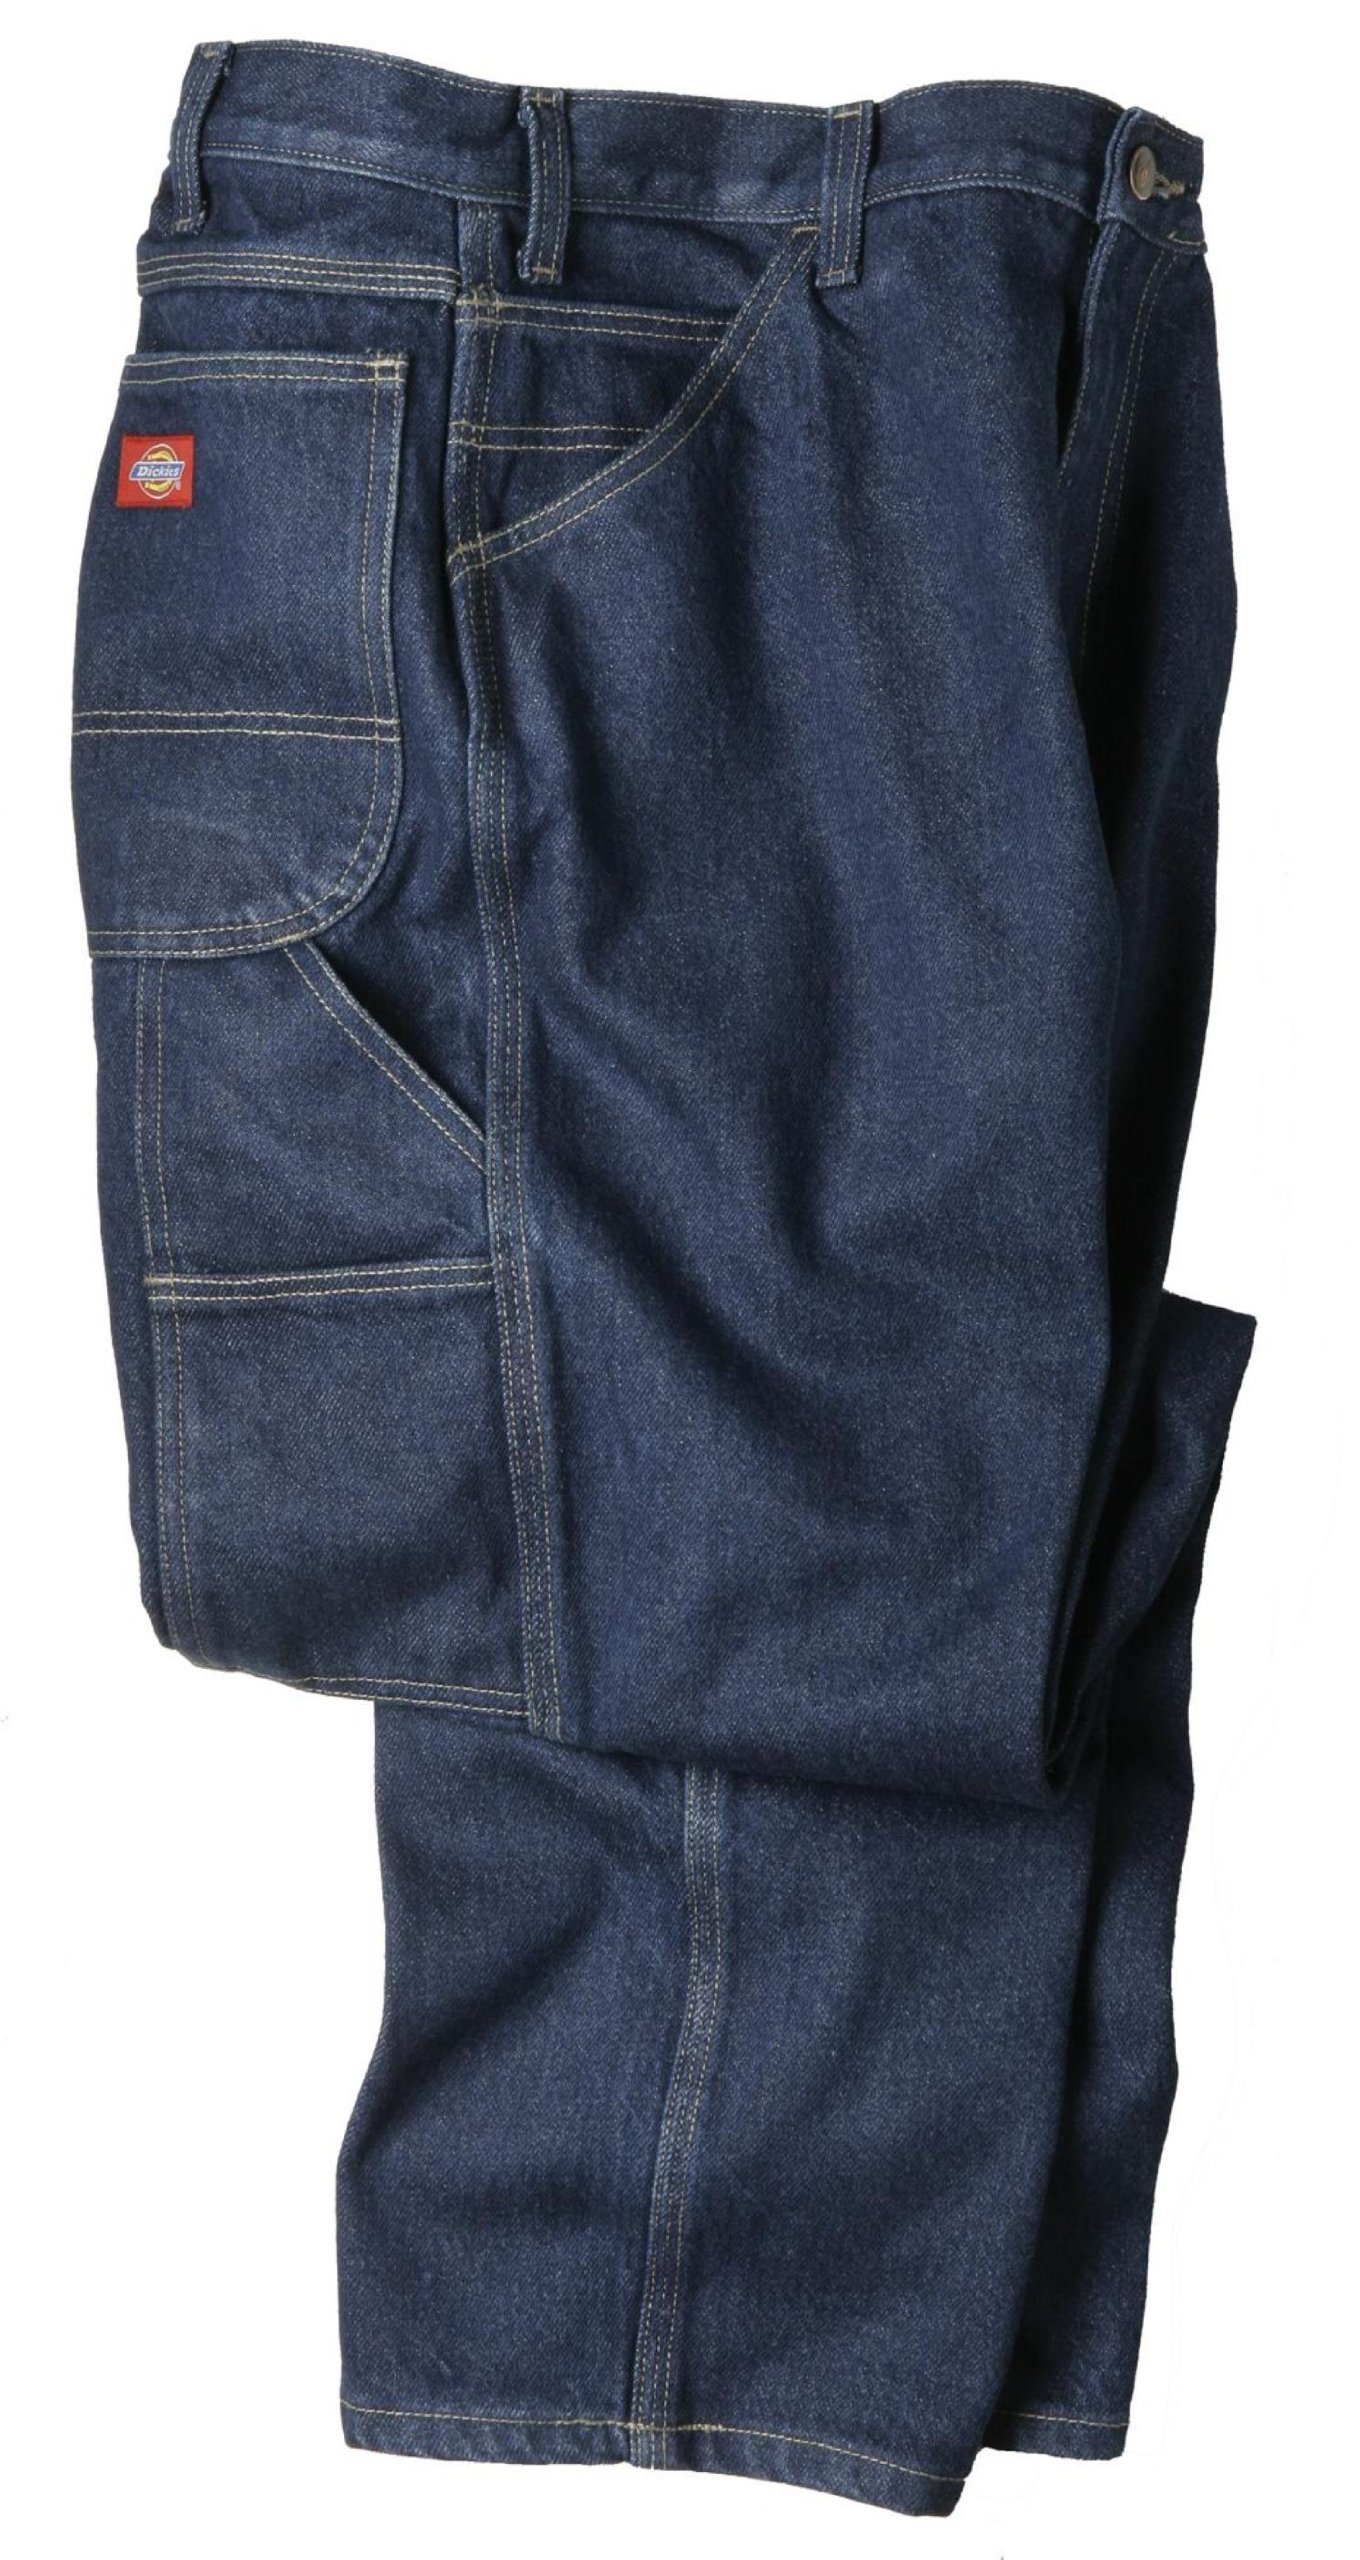 Dickies Men's Industrial Carpenter Jean  Rinsed Indigo Blue 40W x 39L by Dickies Occupational Workwear